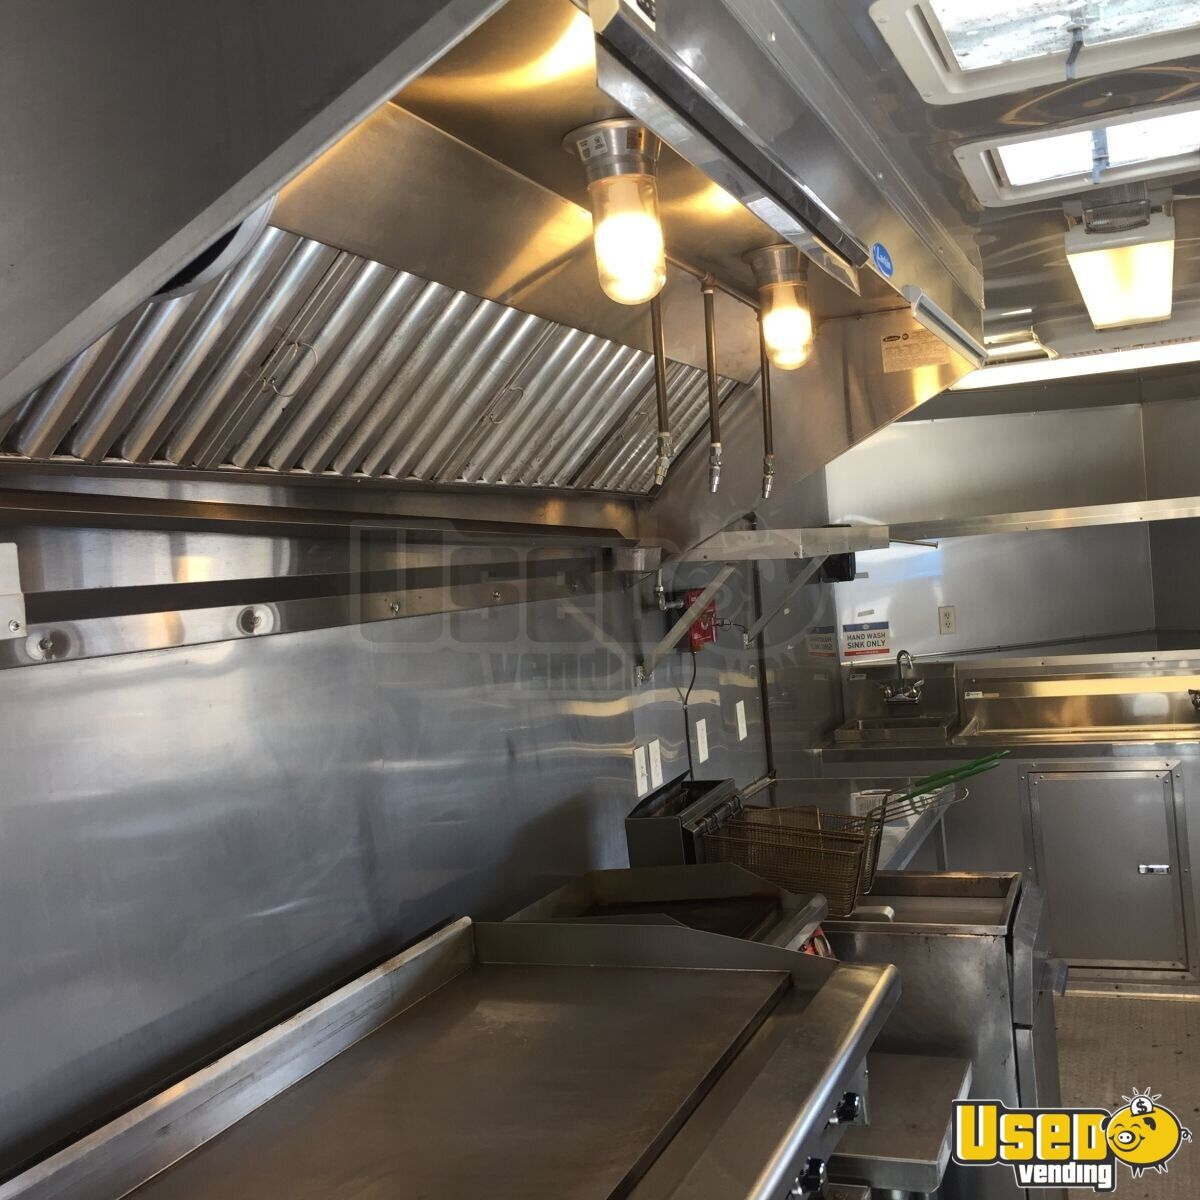 2017 Food Concession Trailer Kitchen Food Trailer Insulated Walls Oklahoma for Sale - 6